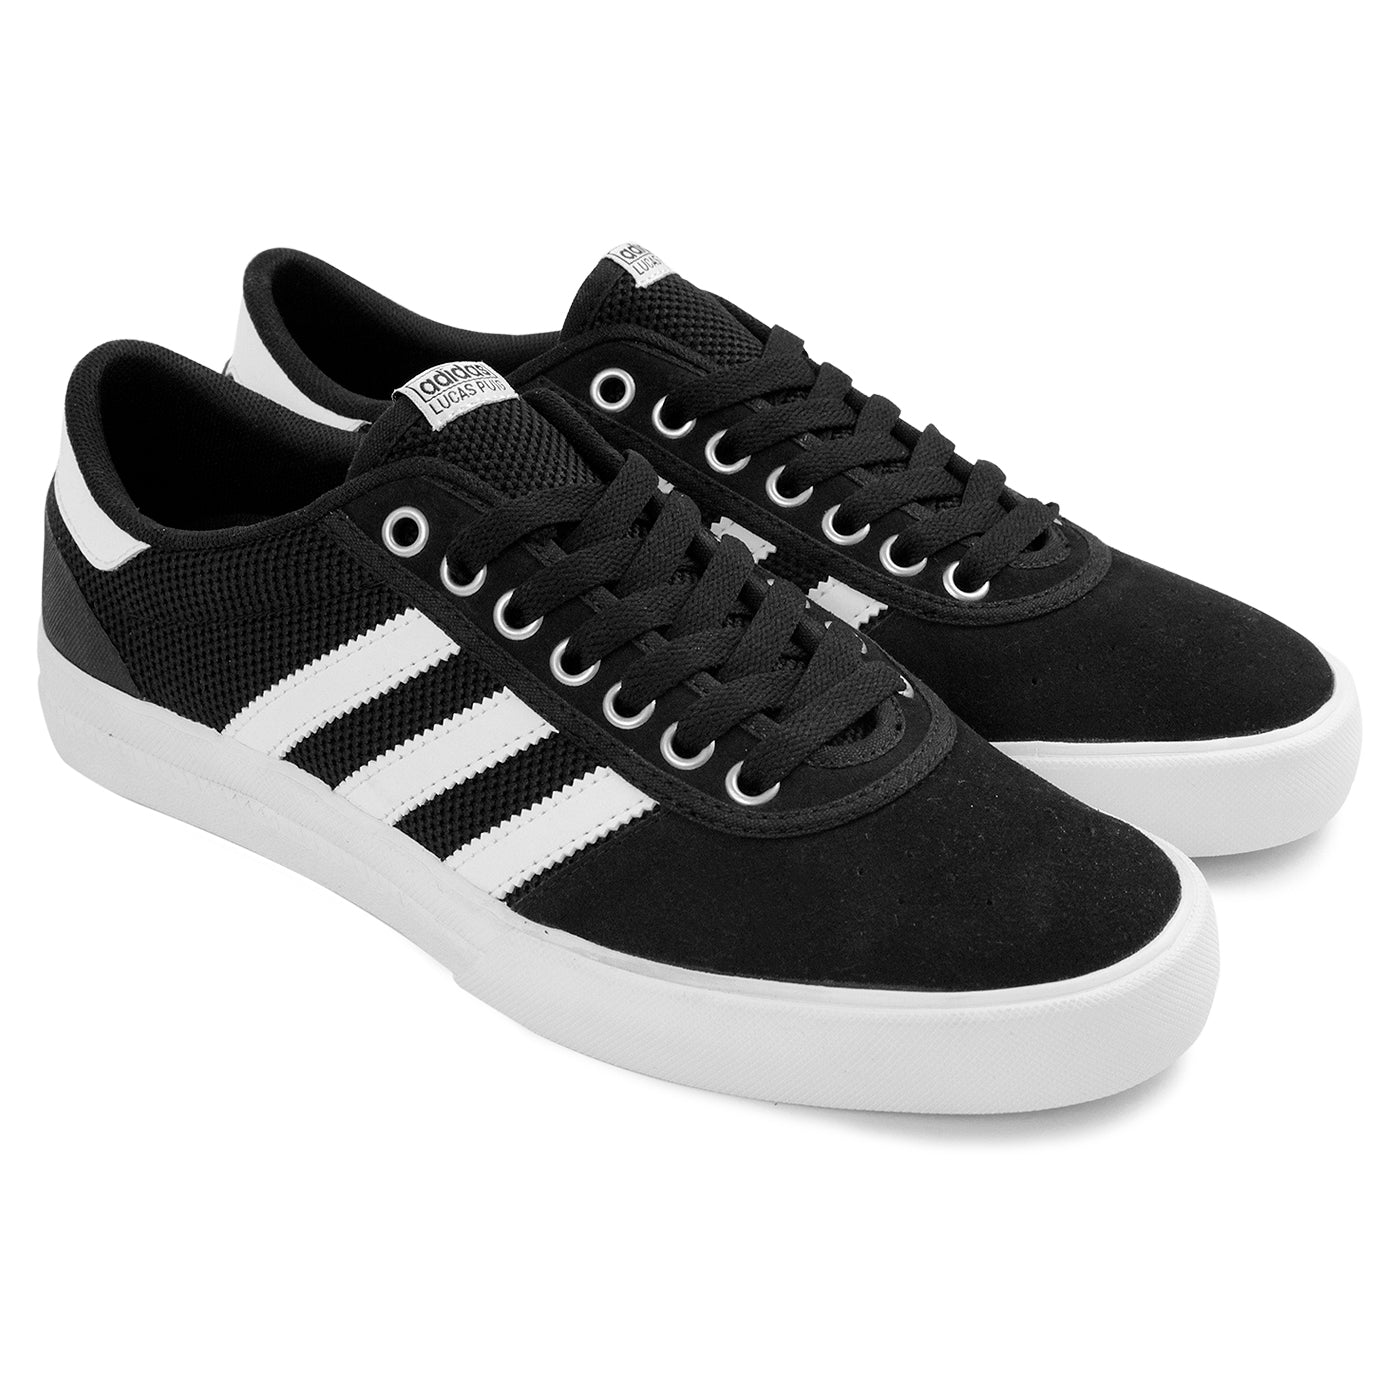 new arrival beb45 0b1dc Lucas Premiere ADV Shoes in Core Black   White   White by Adidas ...